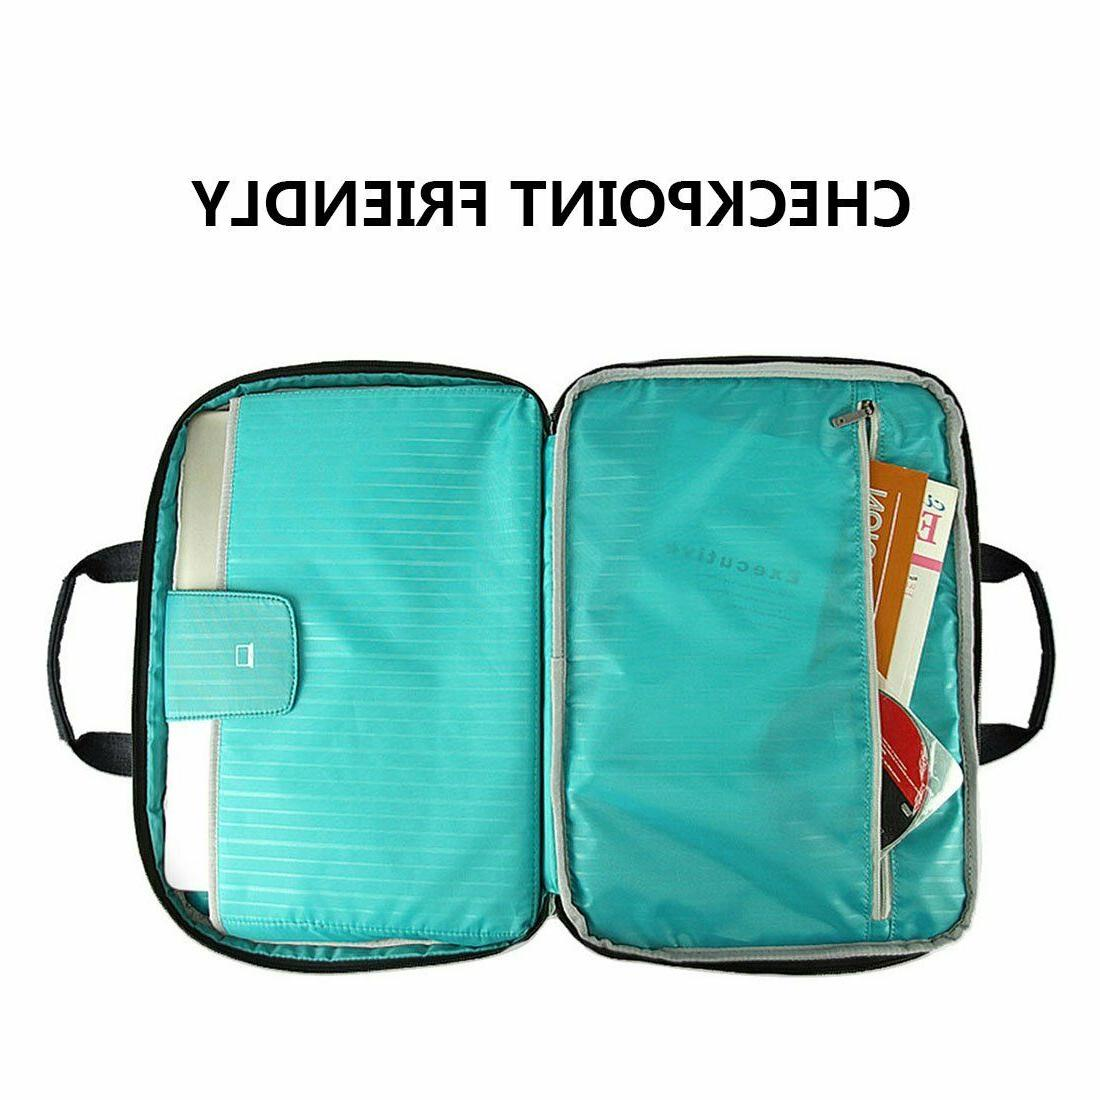 15.6Inch Travel Bag Briefcases Water Resistant, RFID Pocket,